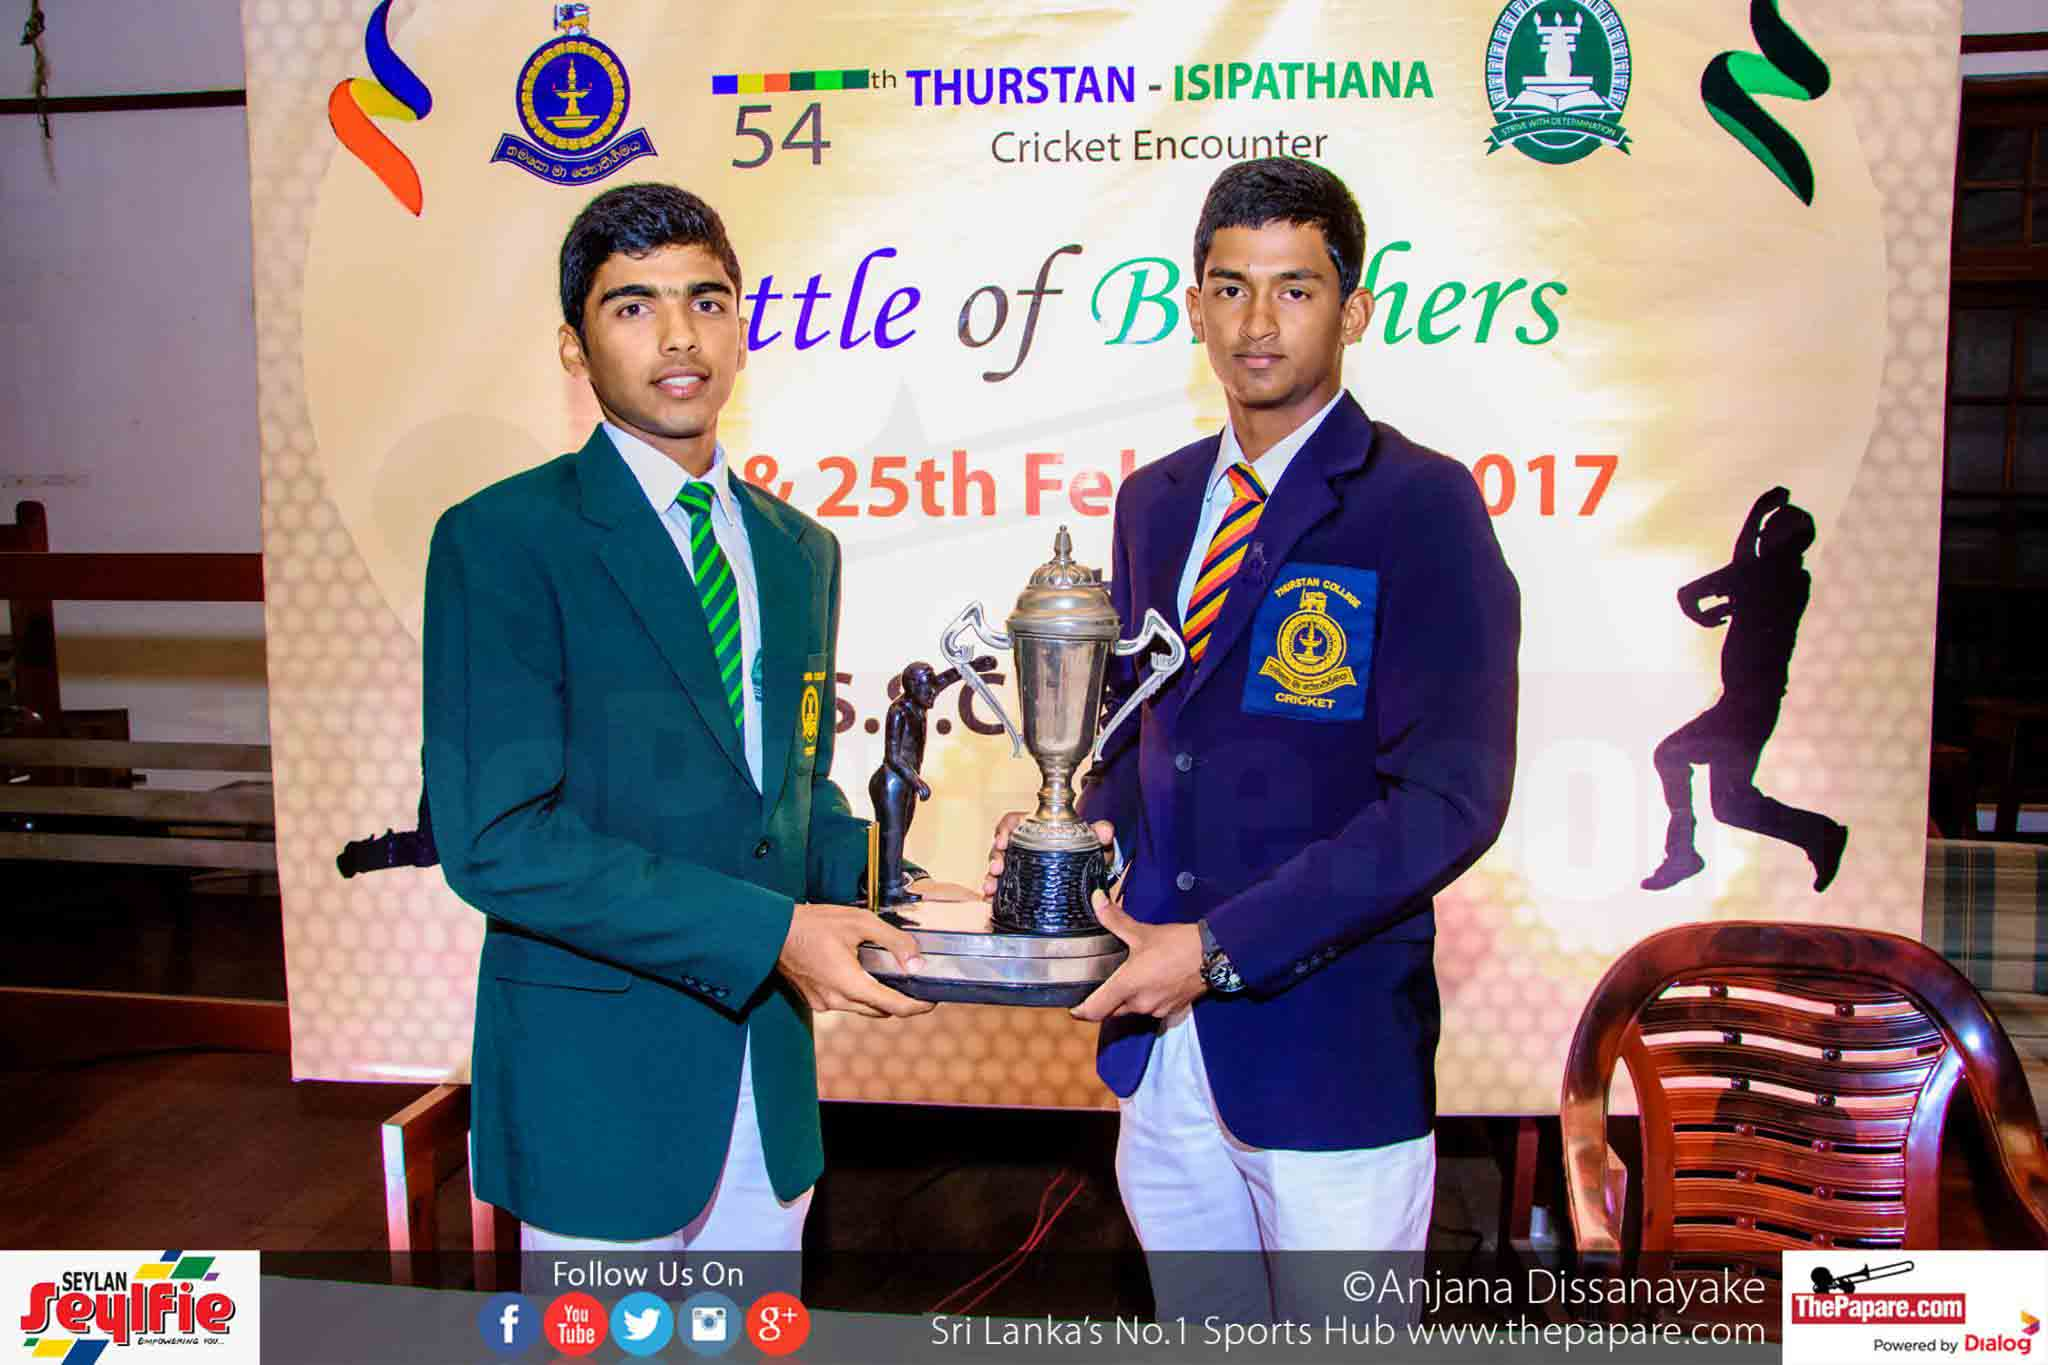 Thurstan vs Isipathana Big Match